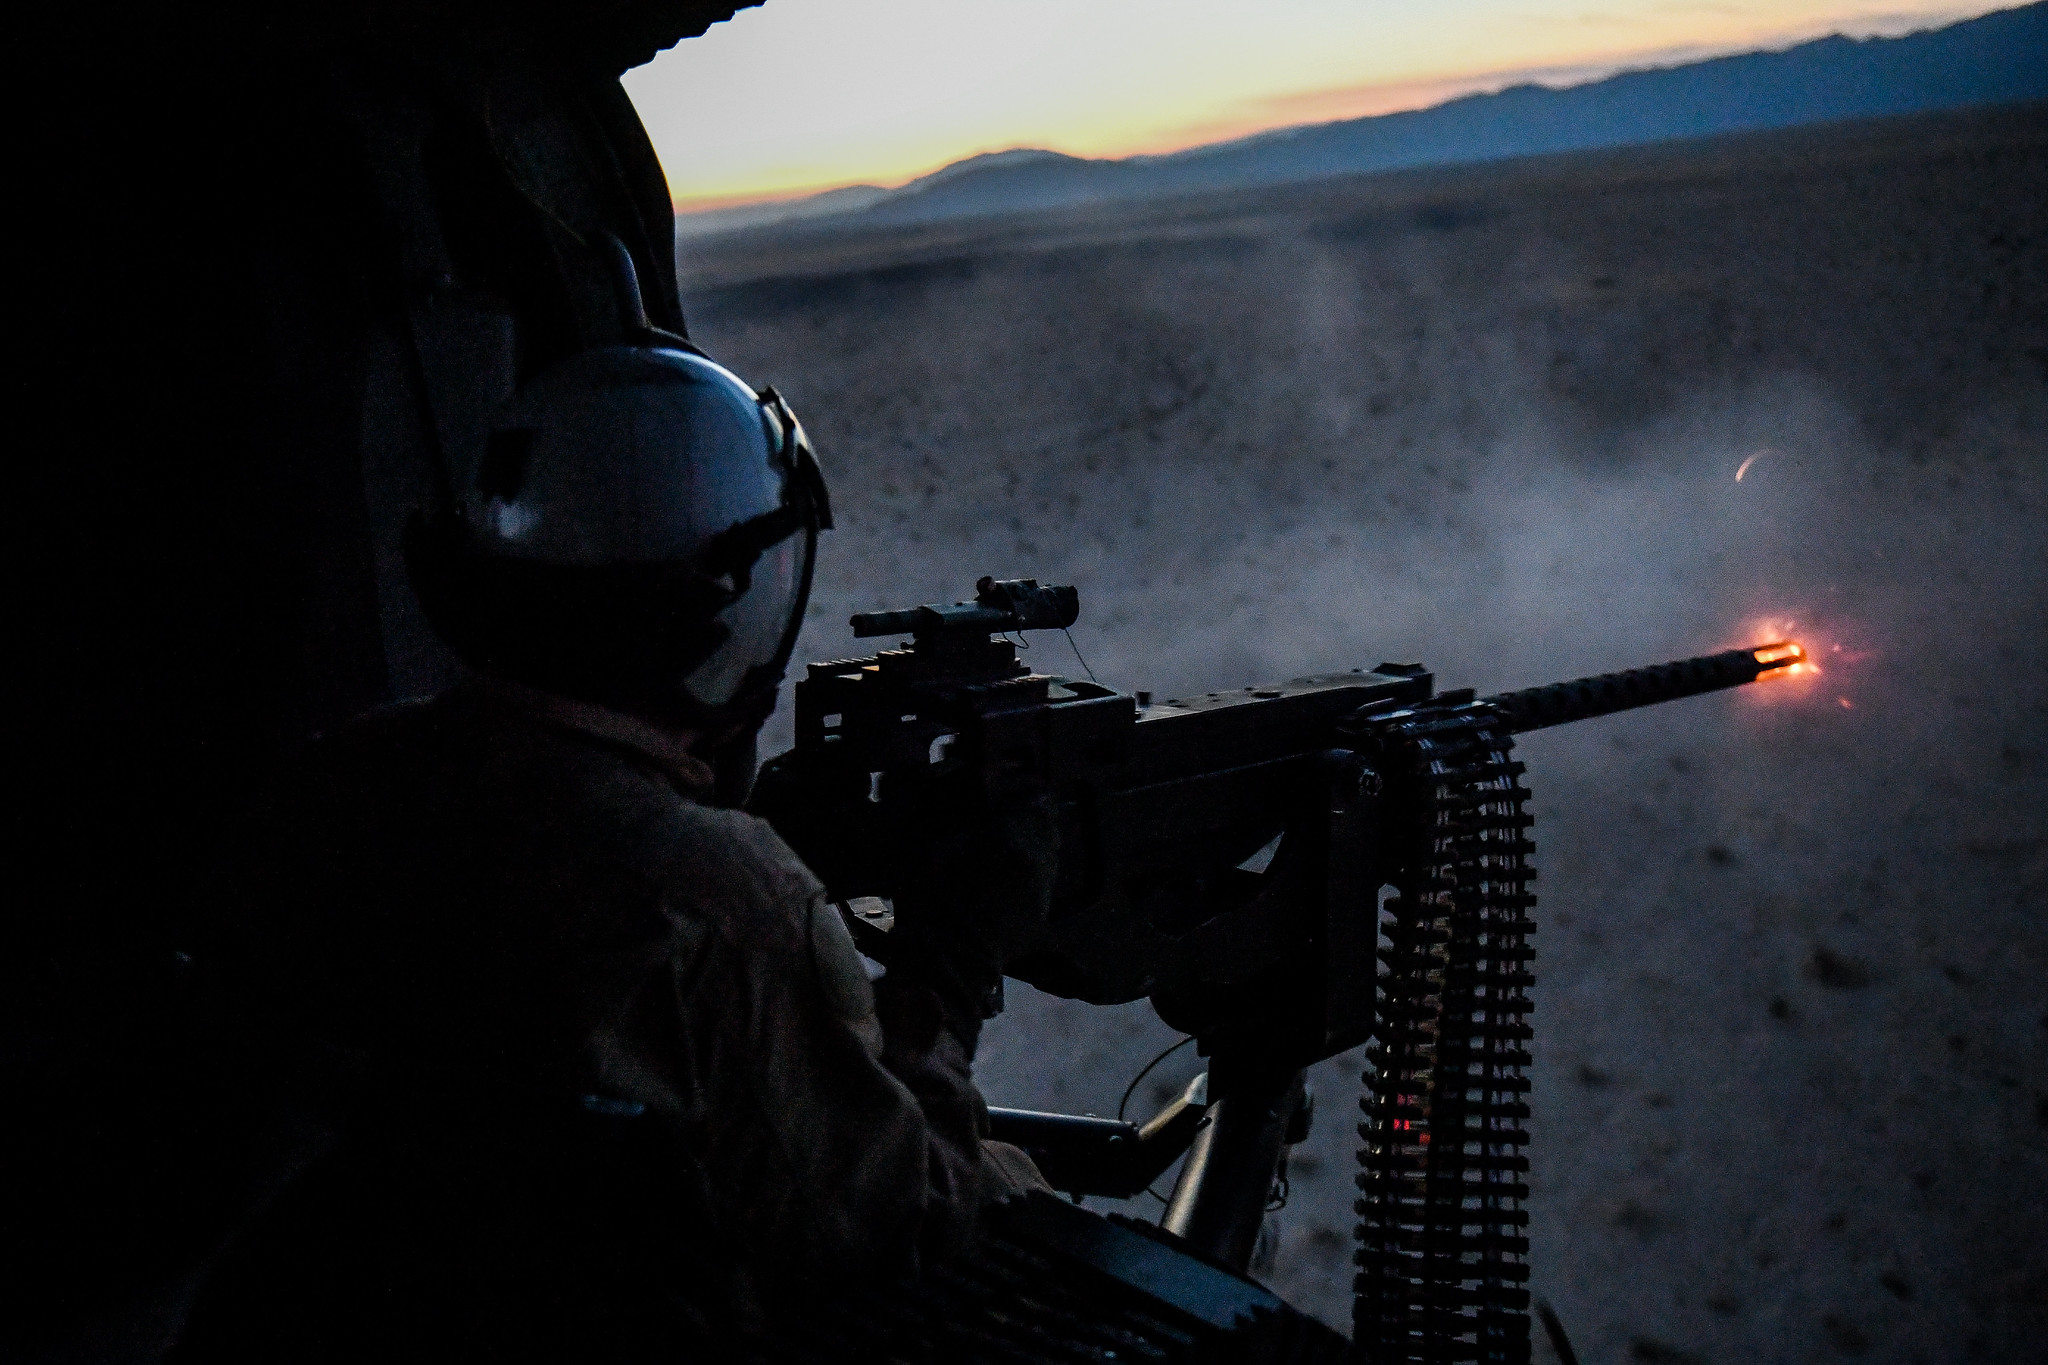 Naval Aircrewman (Helicopter) 3rd Class Copper McCambridge fires a .50-caliber machine gun during an initial aerial gunnery training qualification at Naval Air Facility El Centro, Calif, on Oct. 10, 2020. (Chief Mass Communication Specialist Shannon Renfro/Navy)